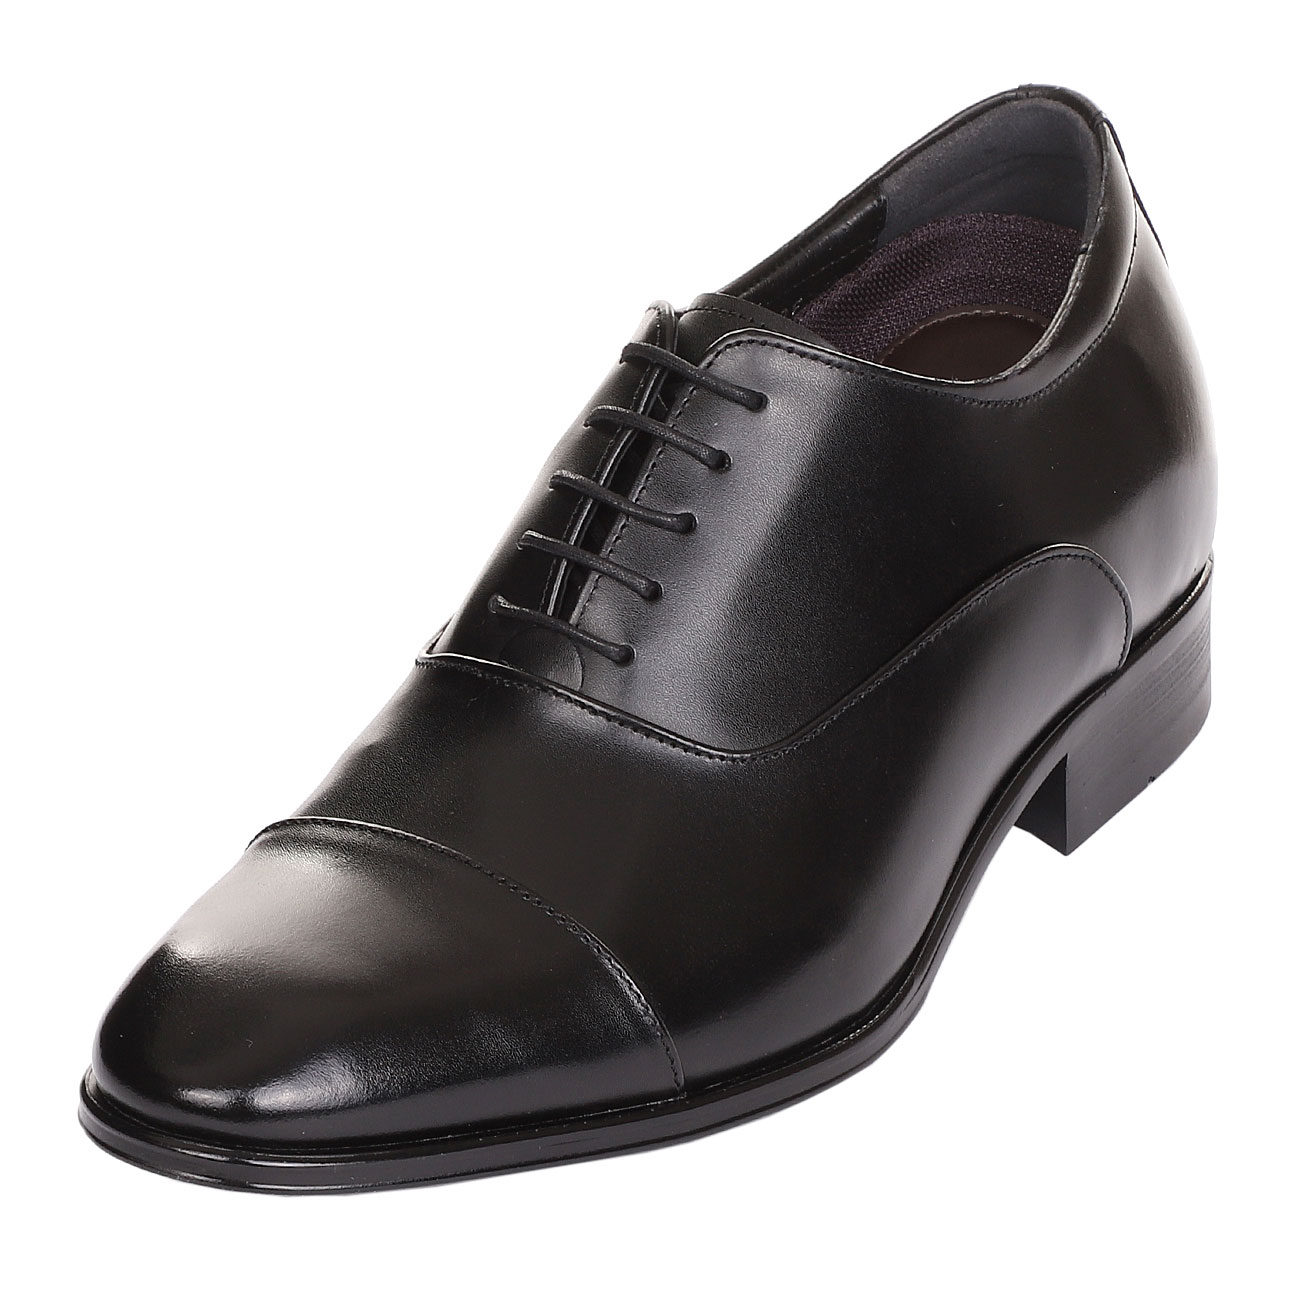 Classic A Cap-Toe Oxford Shoe With A Semi Glossy Formal, Elegant & Dressy-1